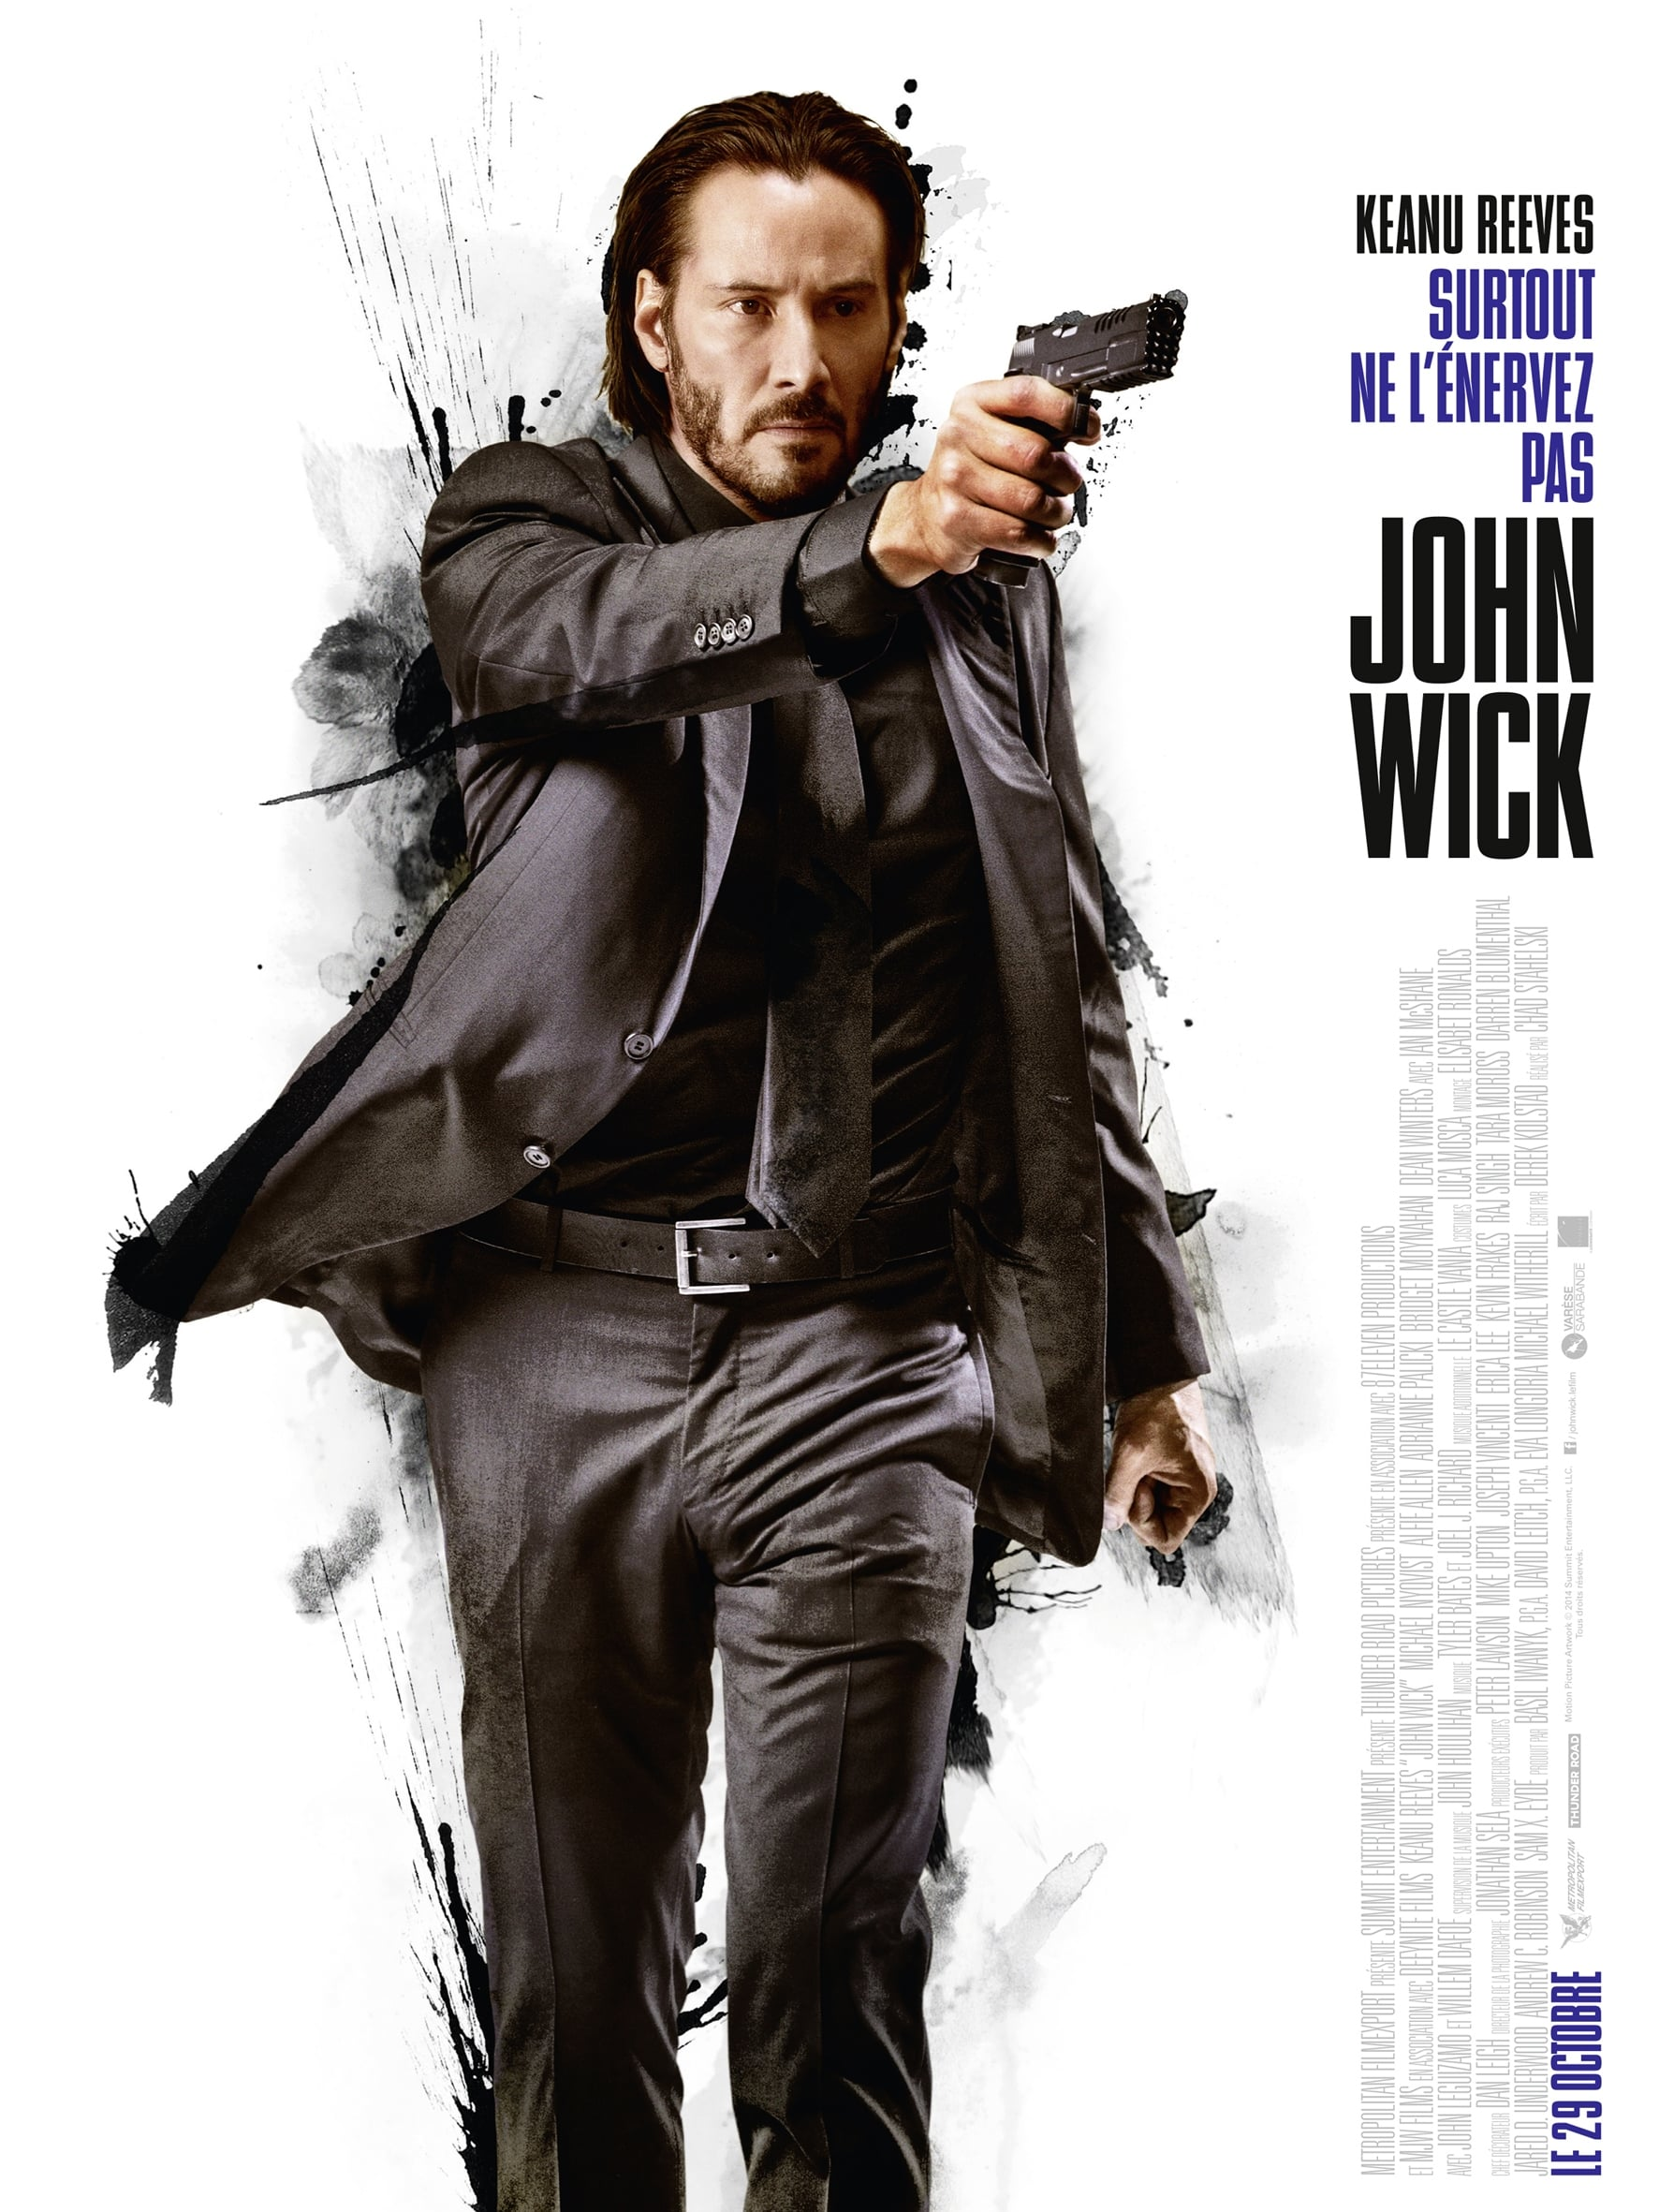 john wick the movie - photo #23